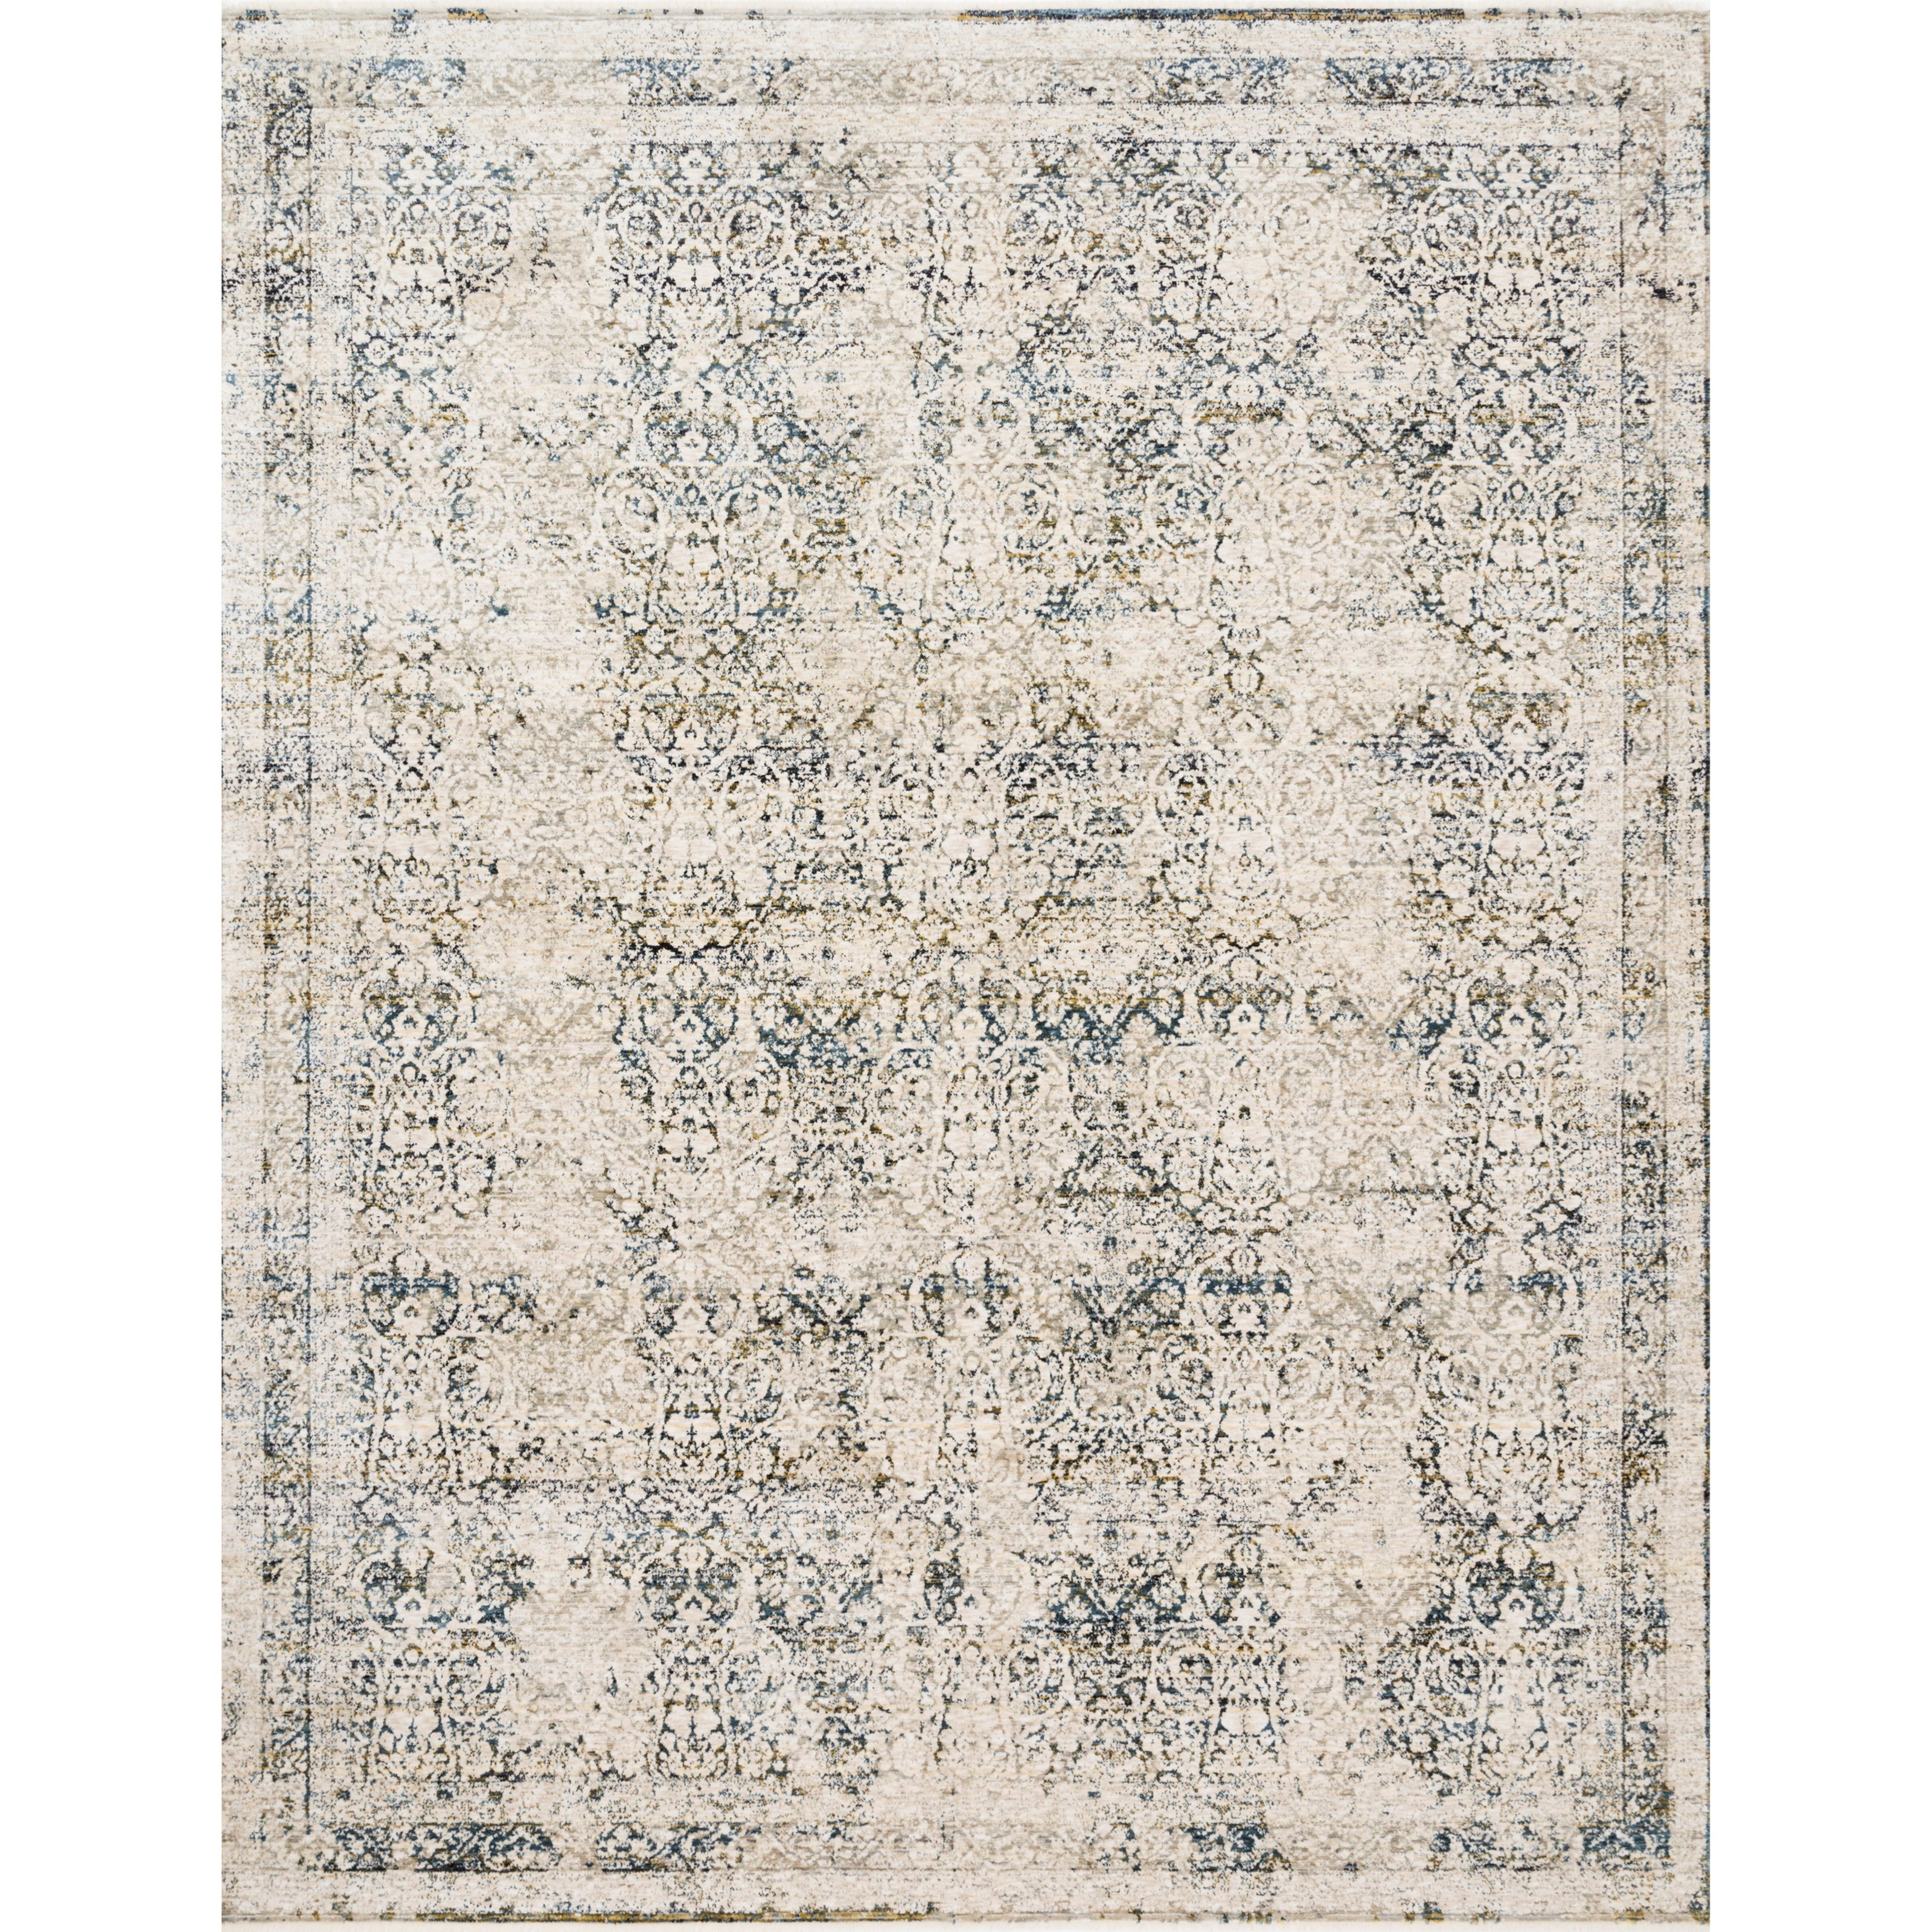 """Theia 3'7"""" x 5'2"""" Natural / Ocean Rug by Loloi Rugs at Virginia Furniture Market"""